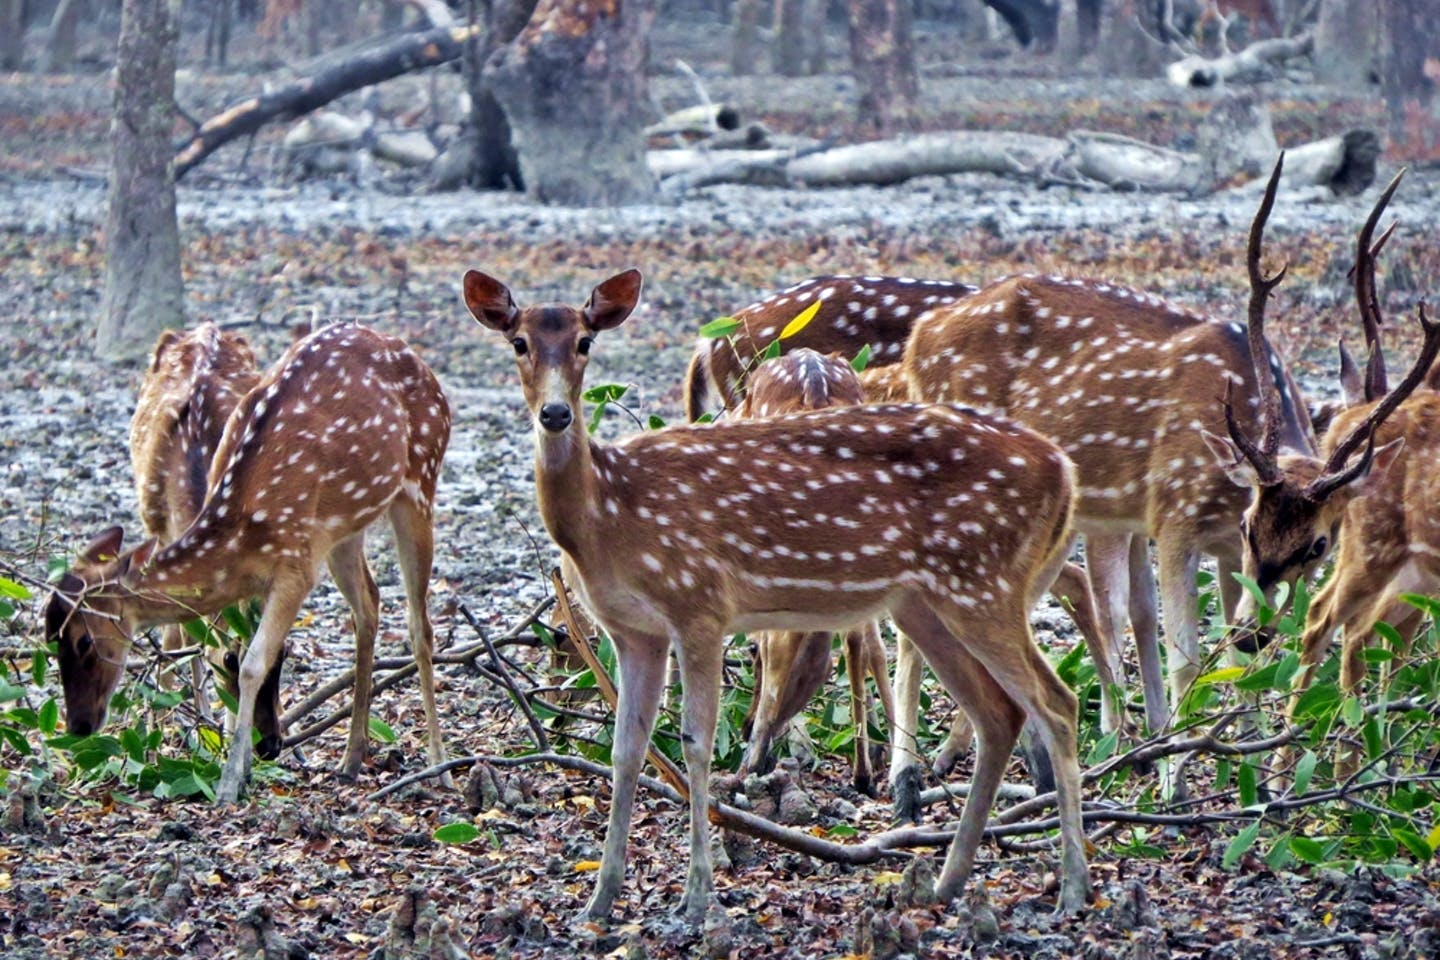 Spotted deer or chital in India's Sundarbans